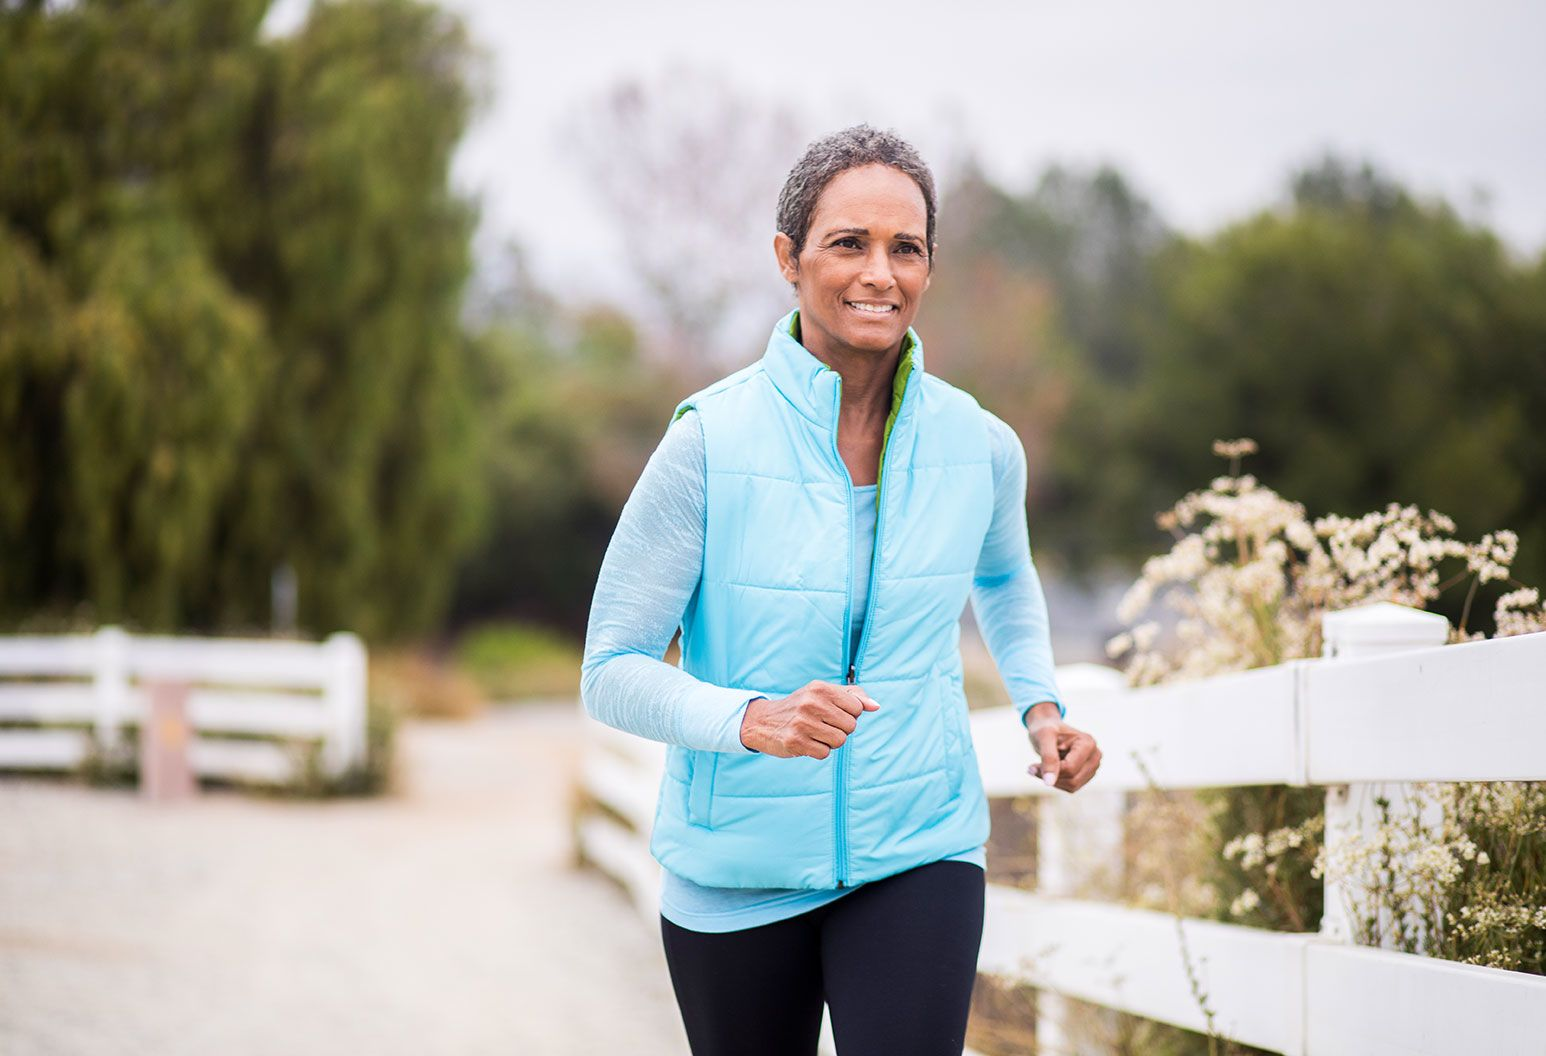 Elderly, dark-skinned woman with short hair jogs outdoors. She is wearing a blue sleeveless bubble vest with a light blue sweater under it. She looks like she is faintly smiling through the pain of jogging.